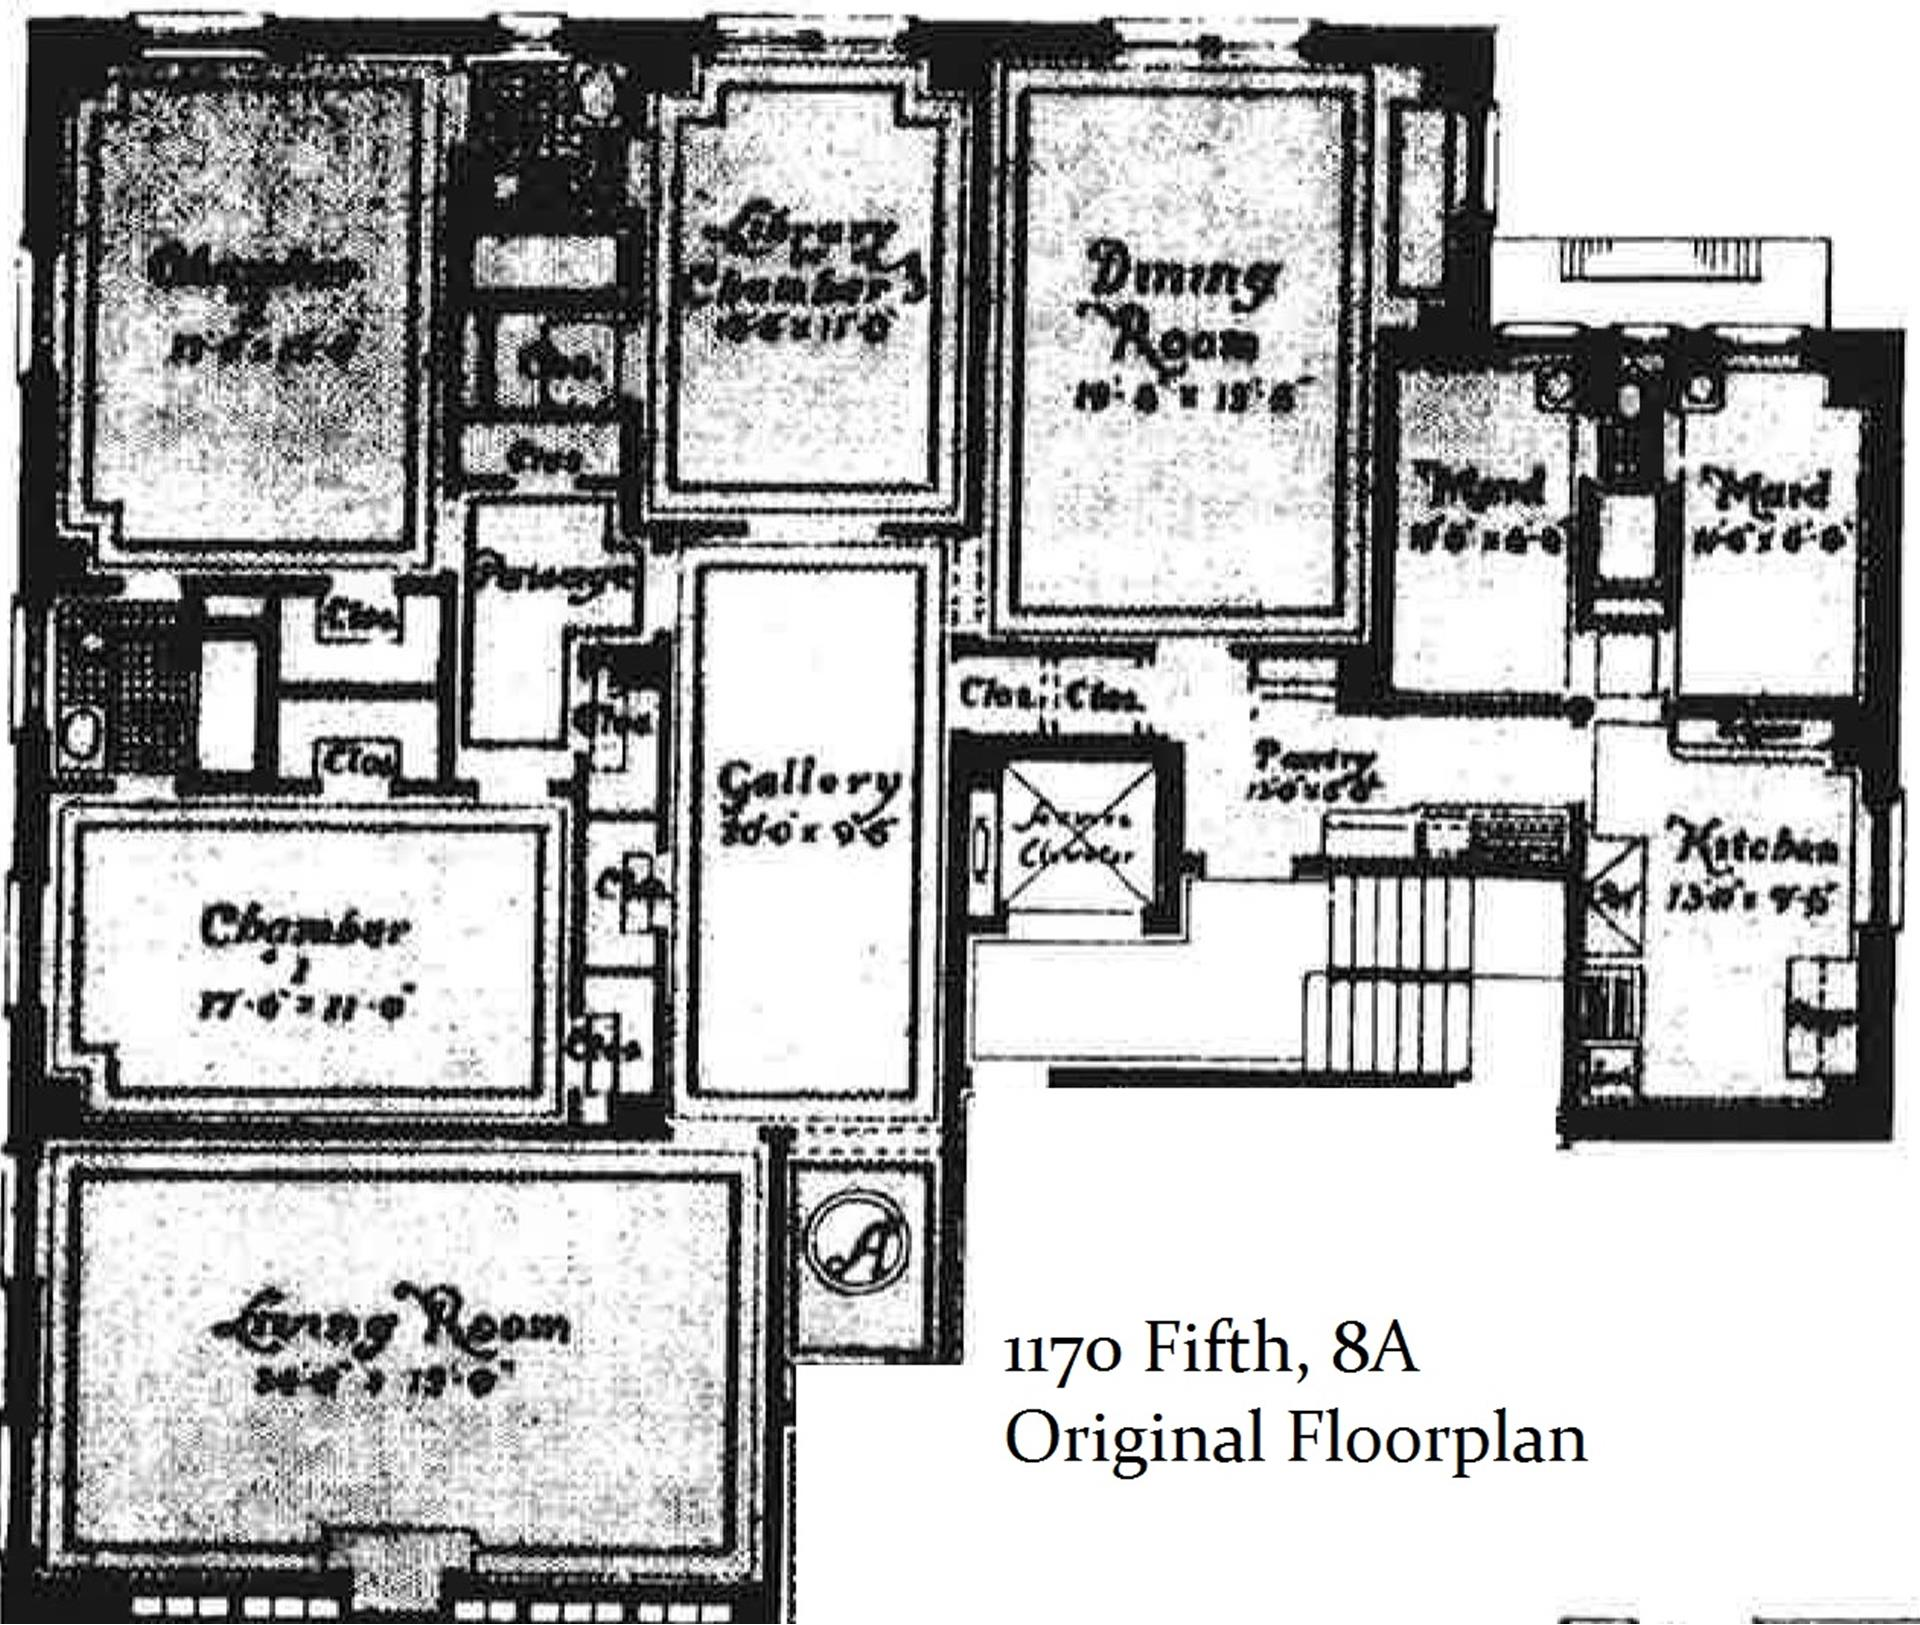 Floor plan of 1170 Fifth Avenue, 8A - Upper East Side, New York